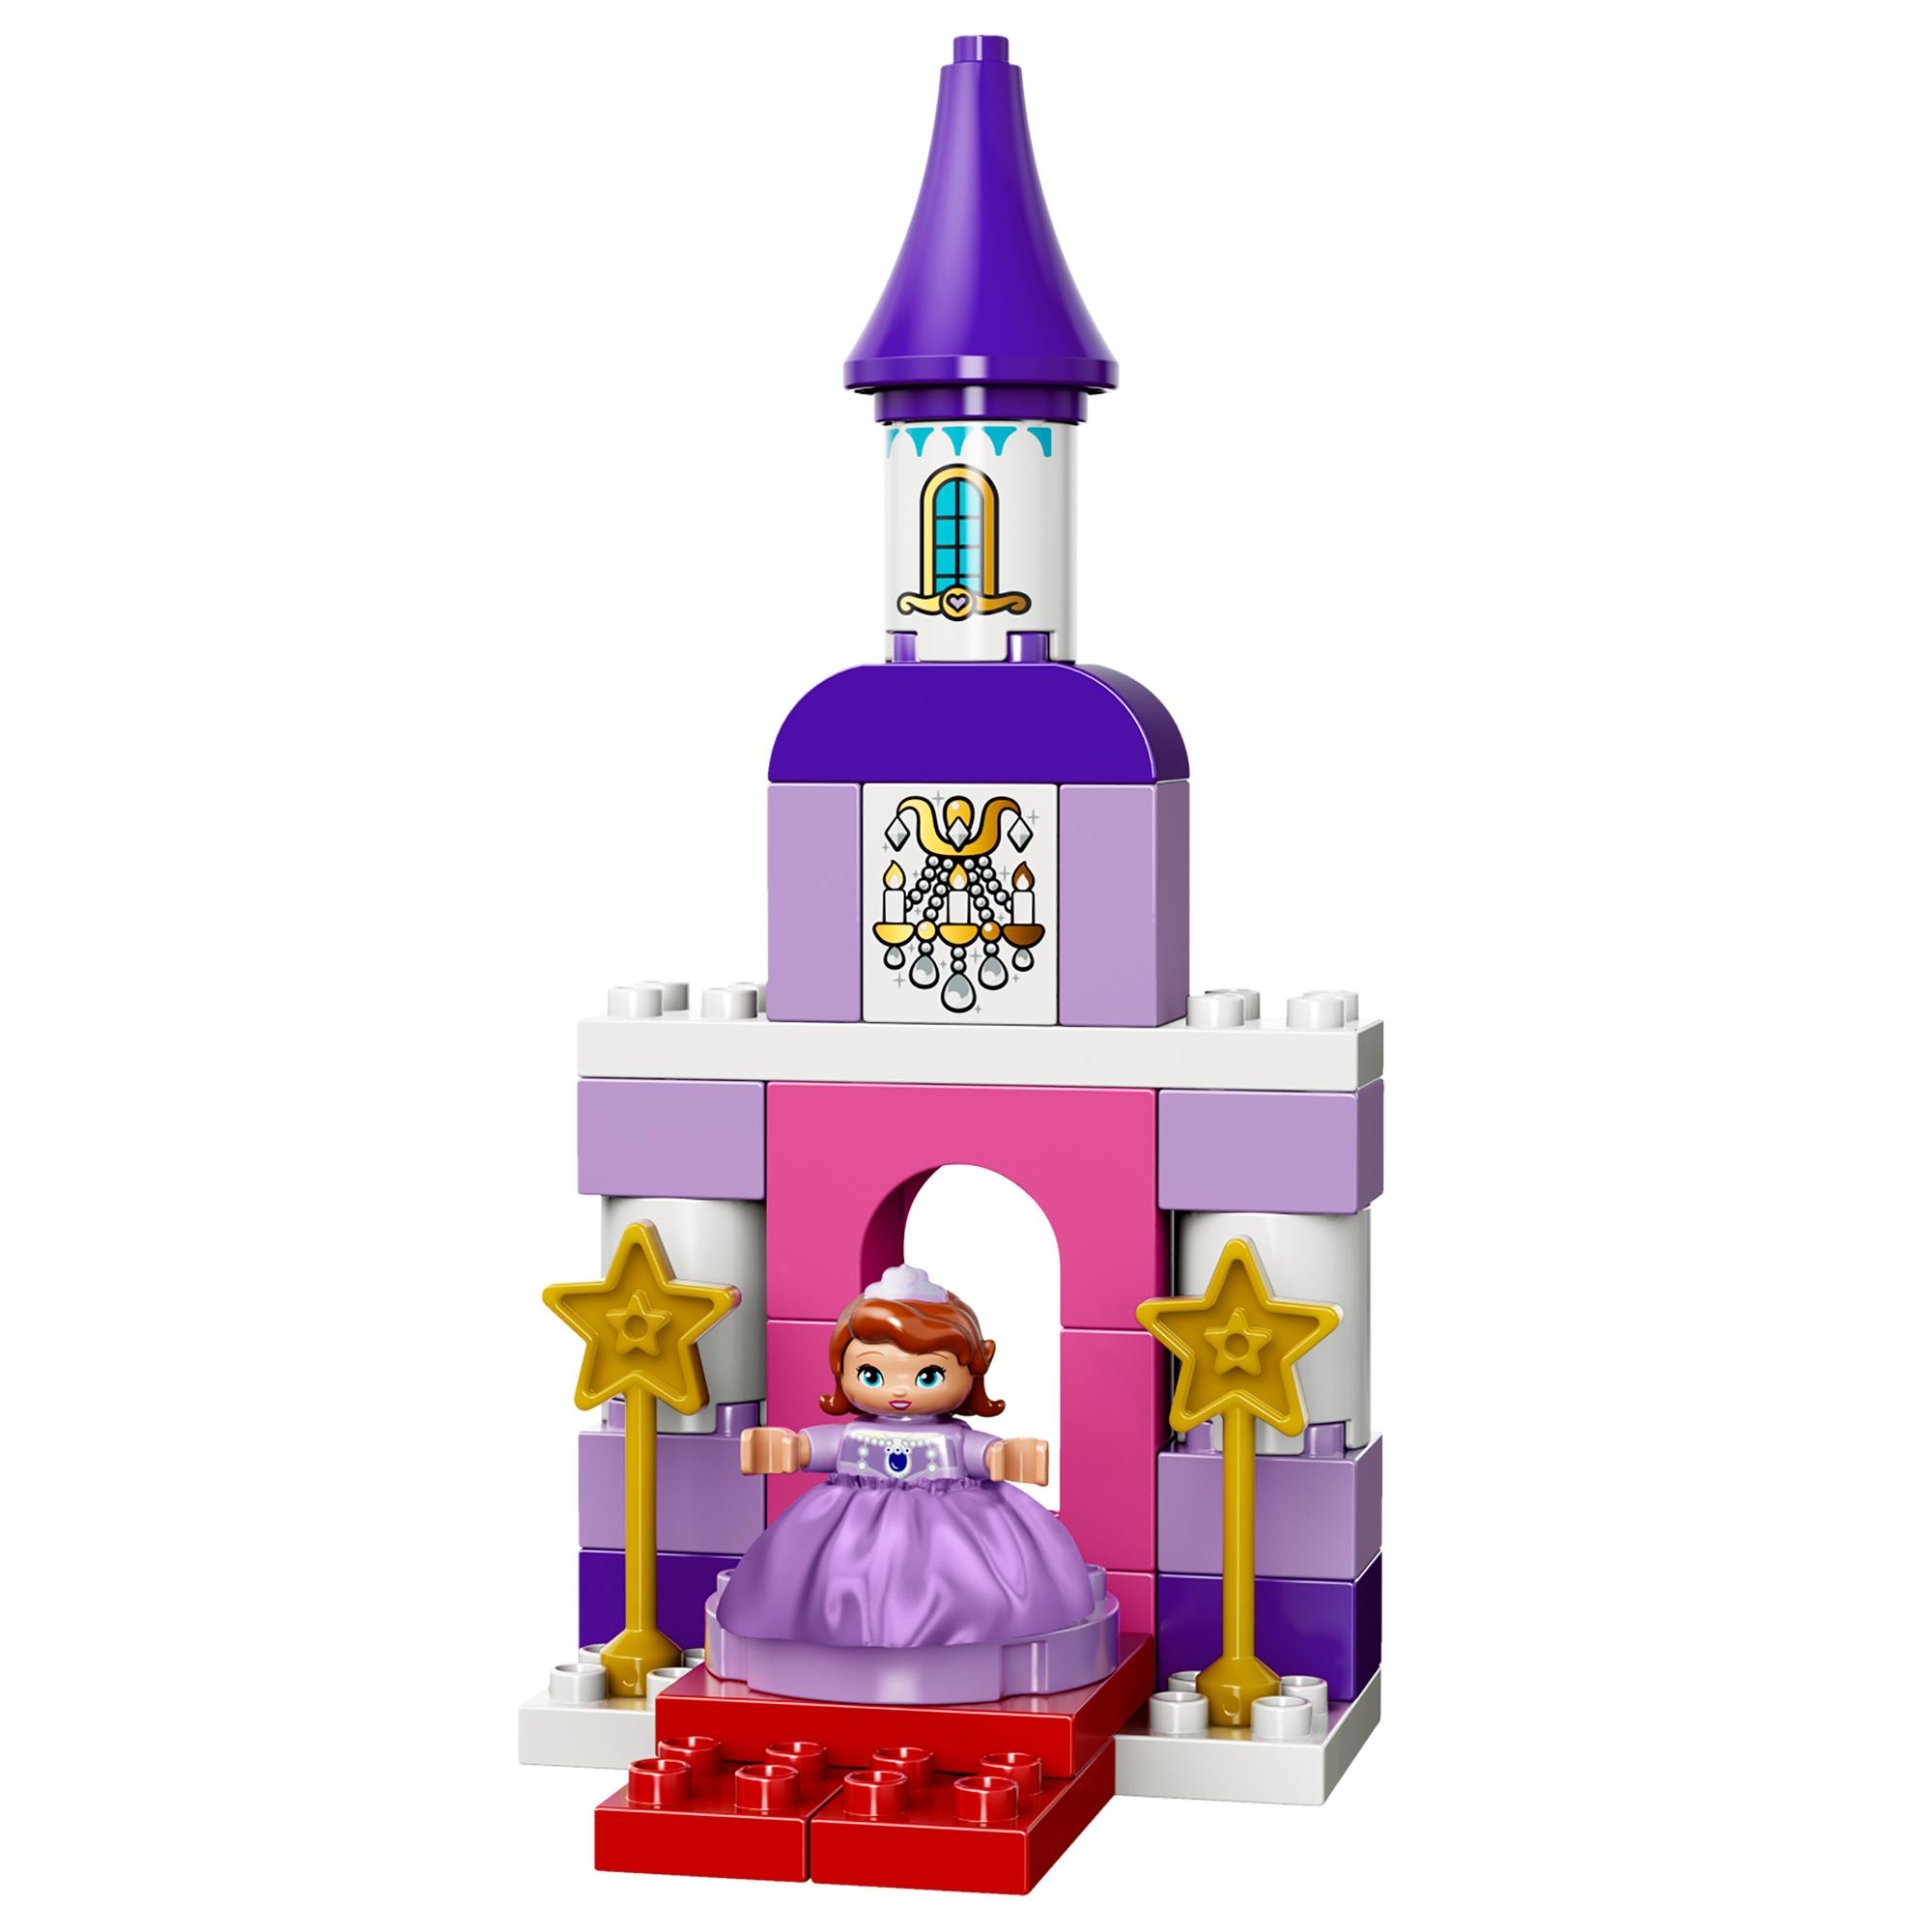 LEGO DUPLO Sofia the First Royal Castle 10595.